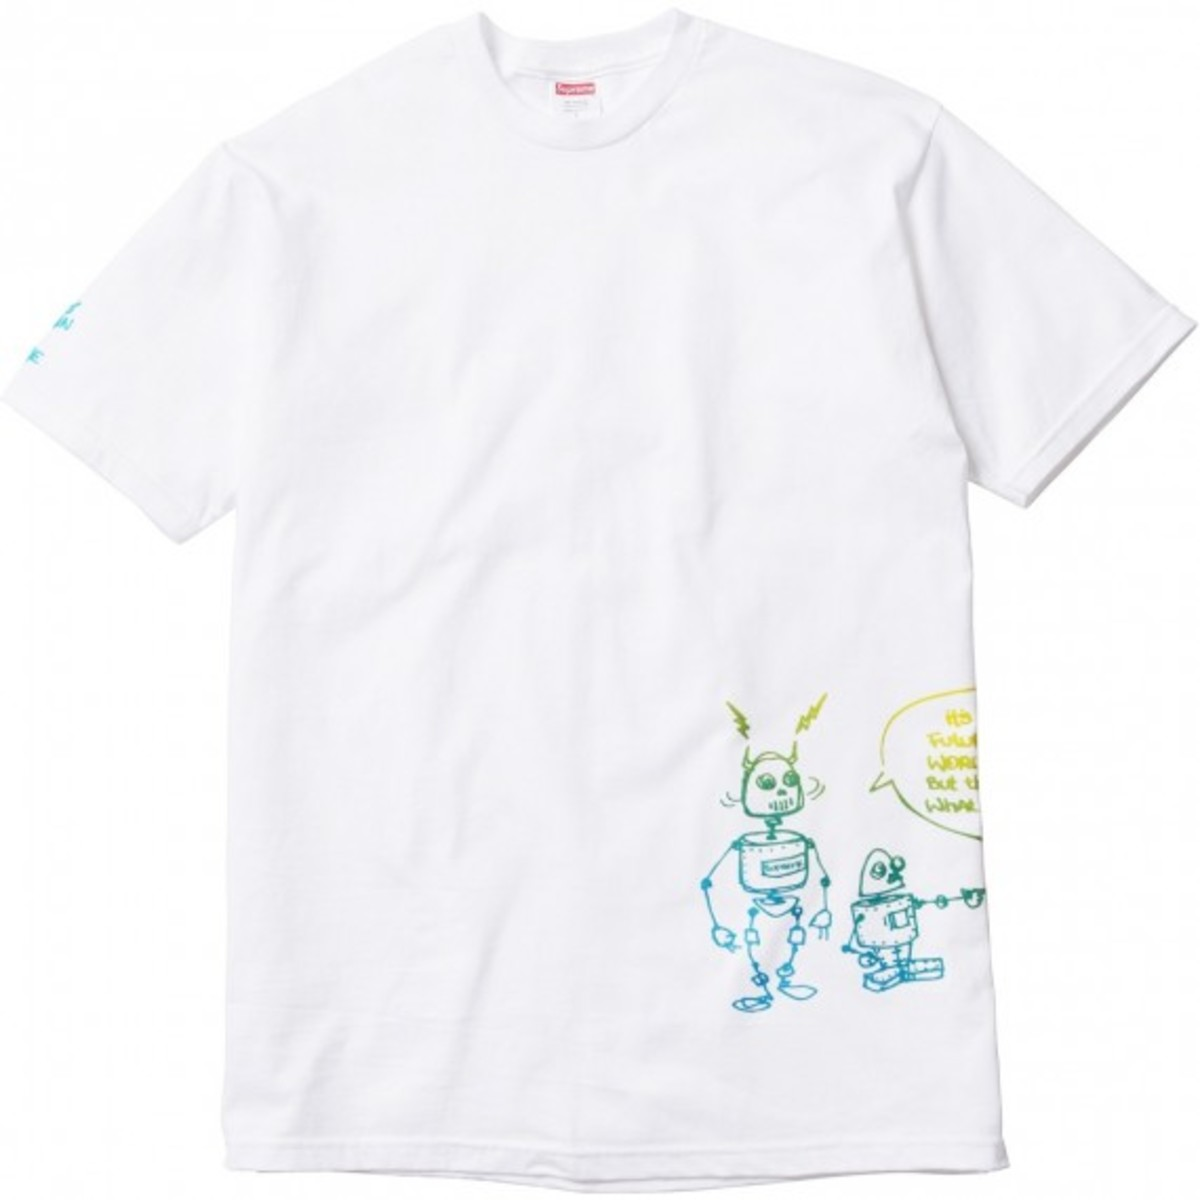 lance-mountain-supreme-robot-tee-06